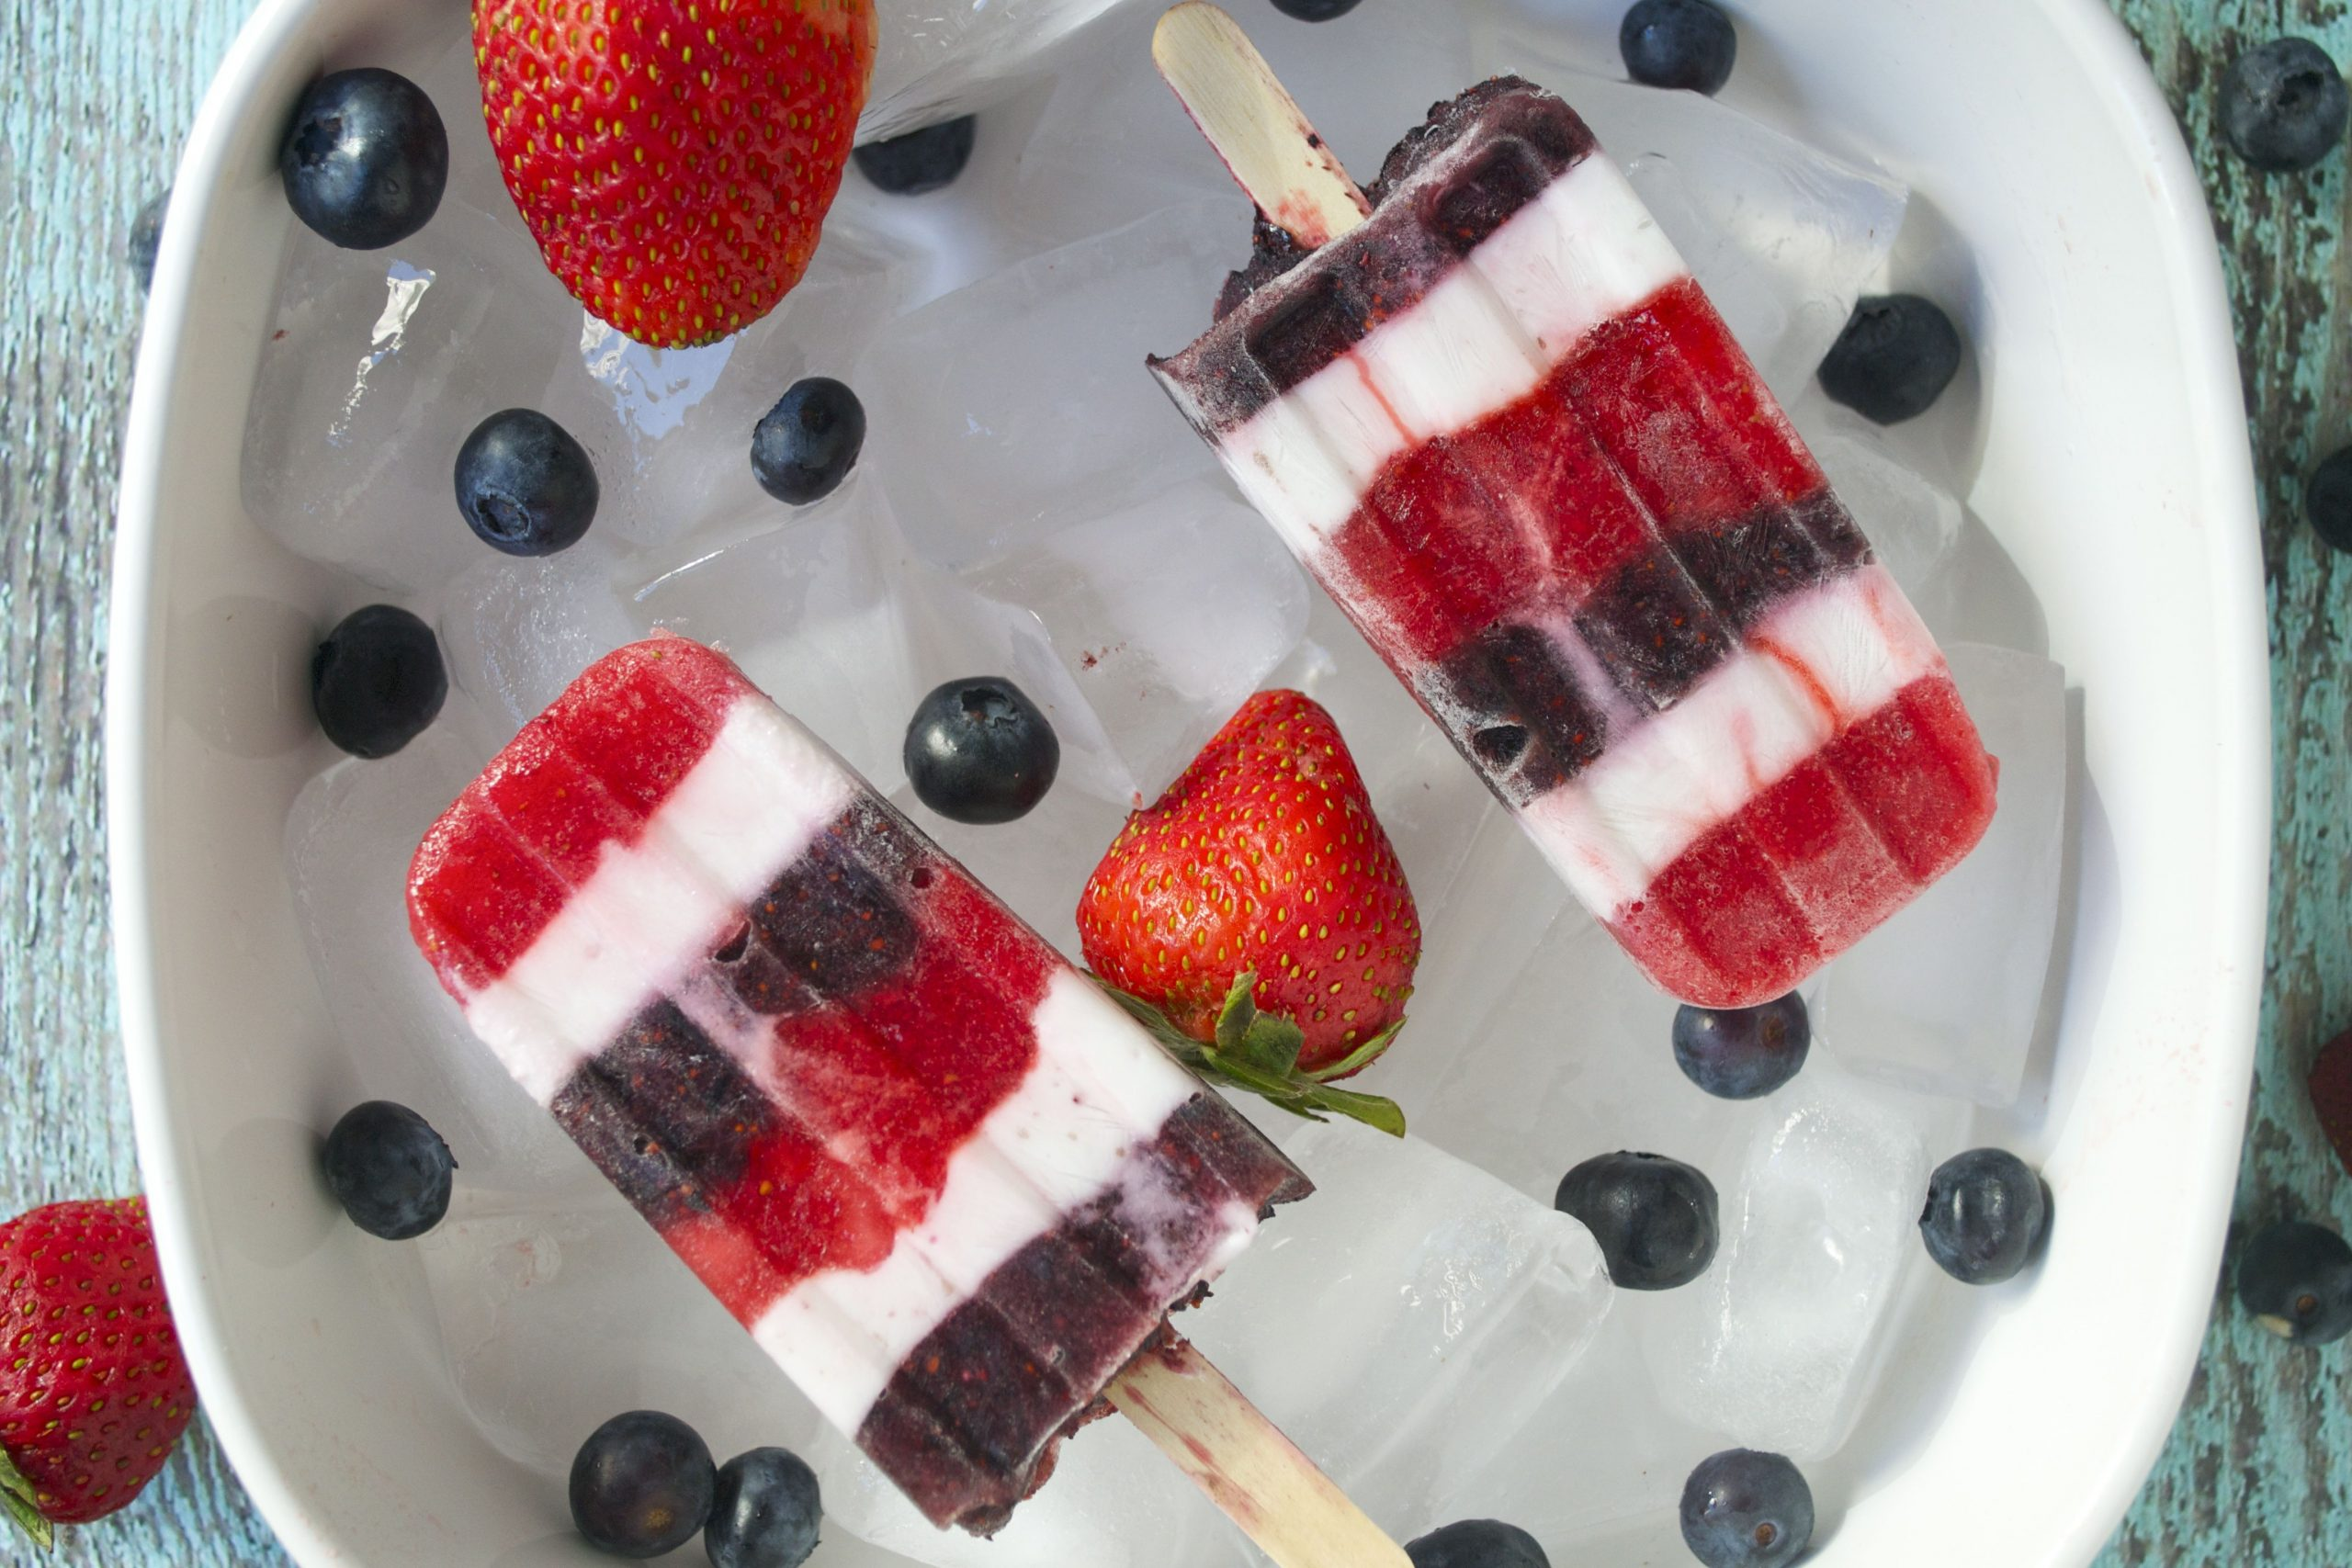 Red, White and Blueberry Popsicles (GF, DF, SF, V) - A Dash of Megnut